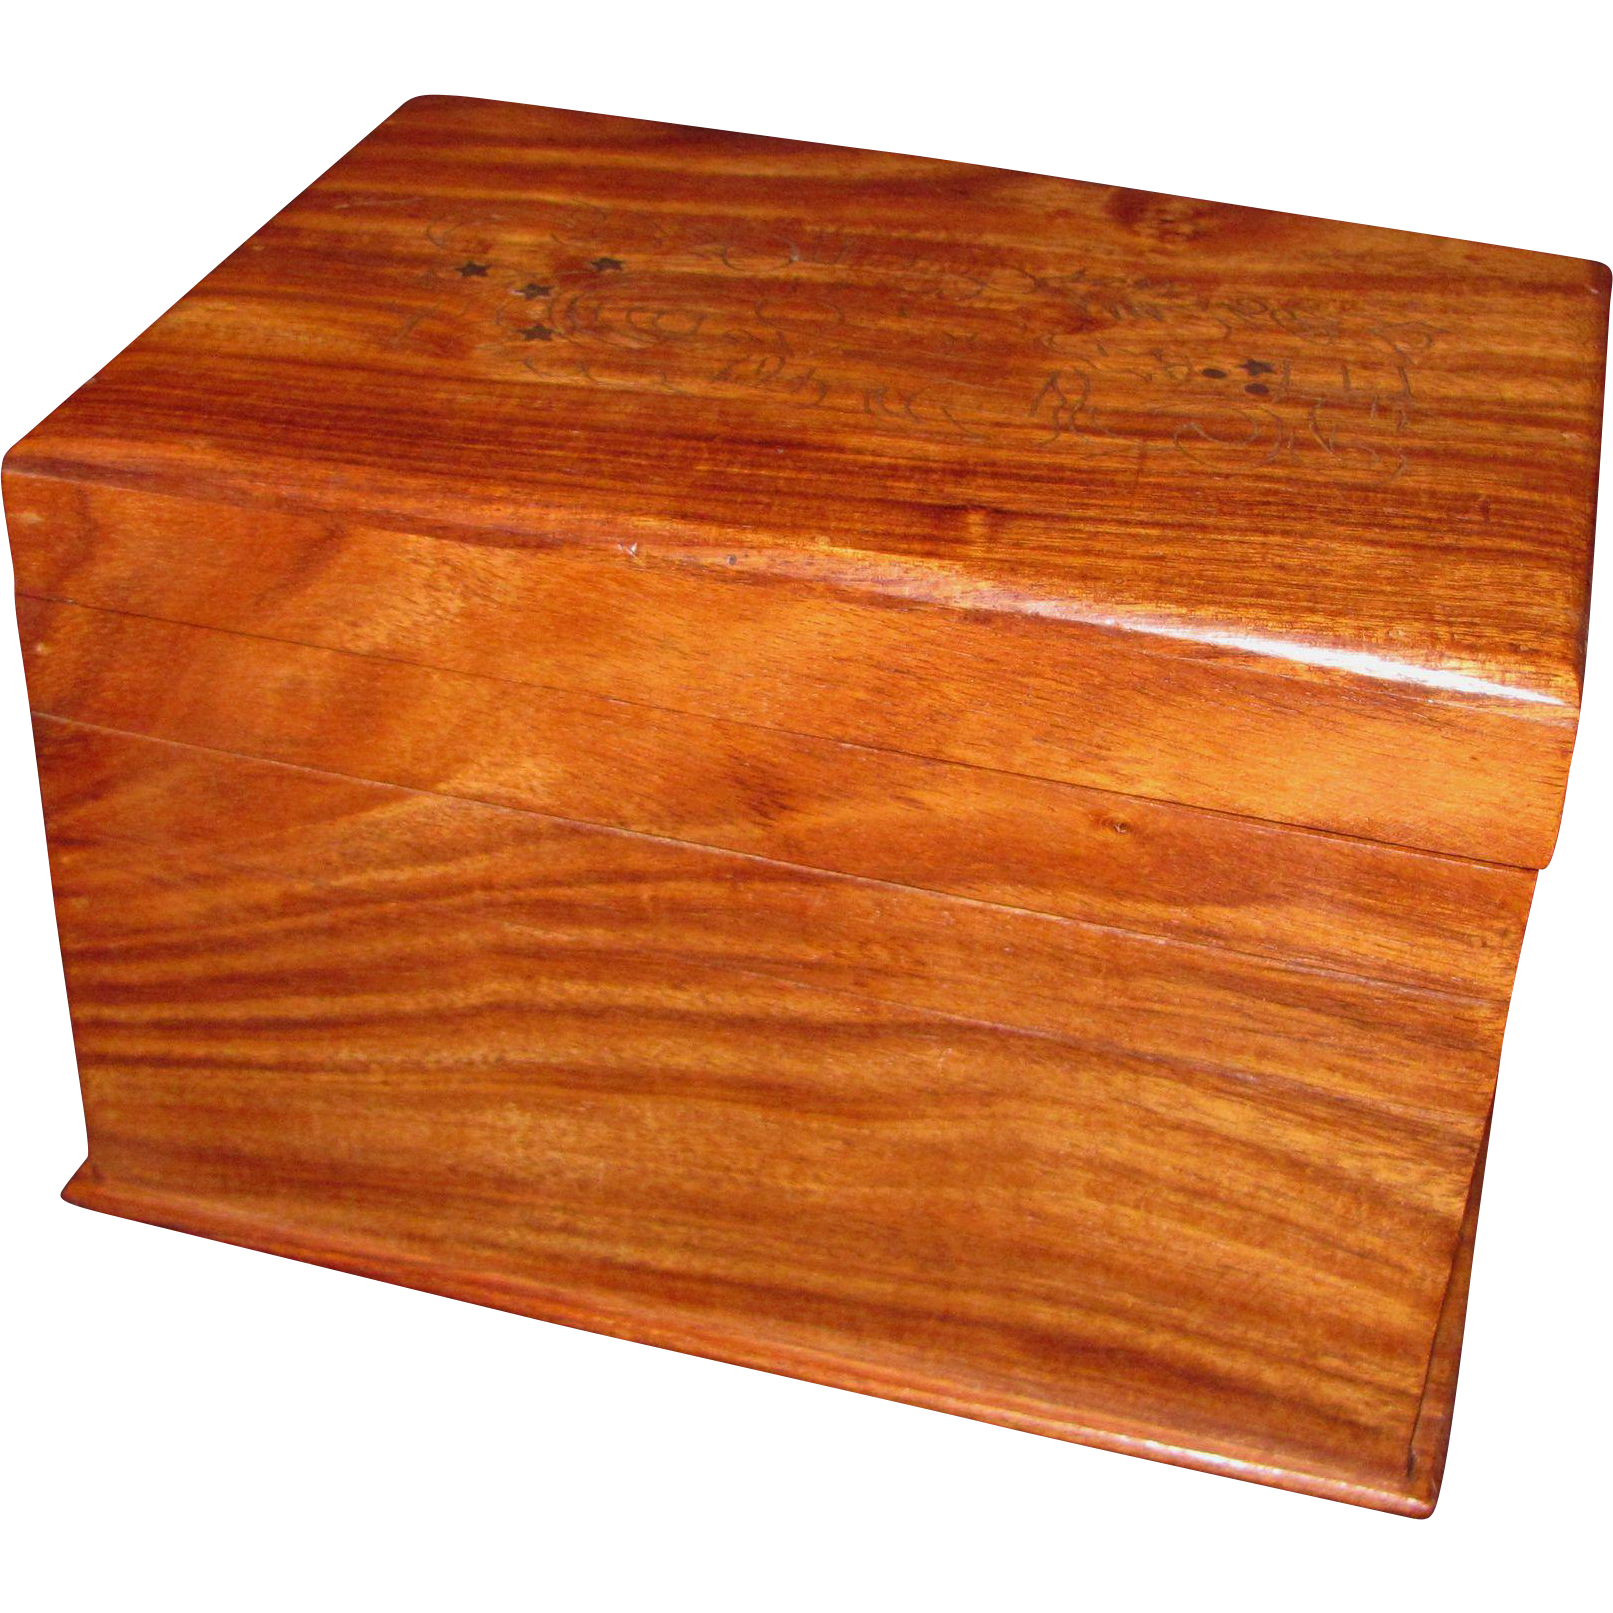 Antique Anglo-Indian Padauk Wood Box 19th Century